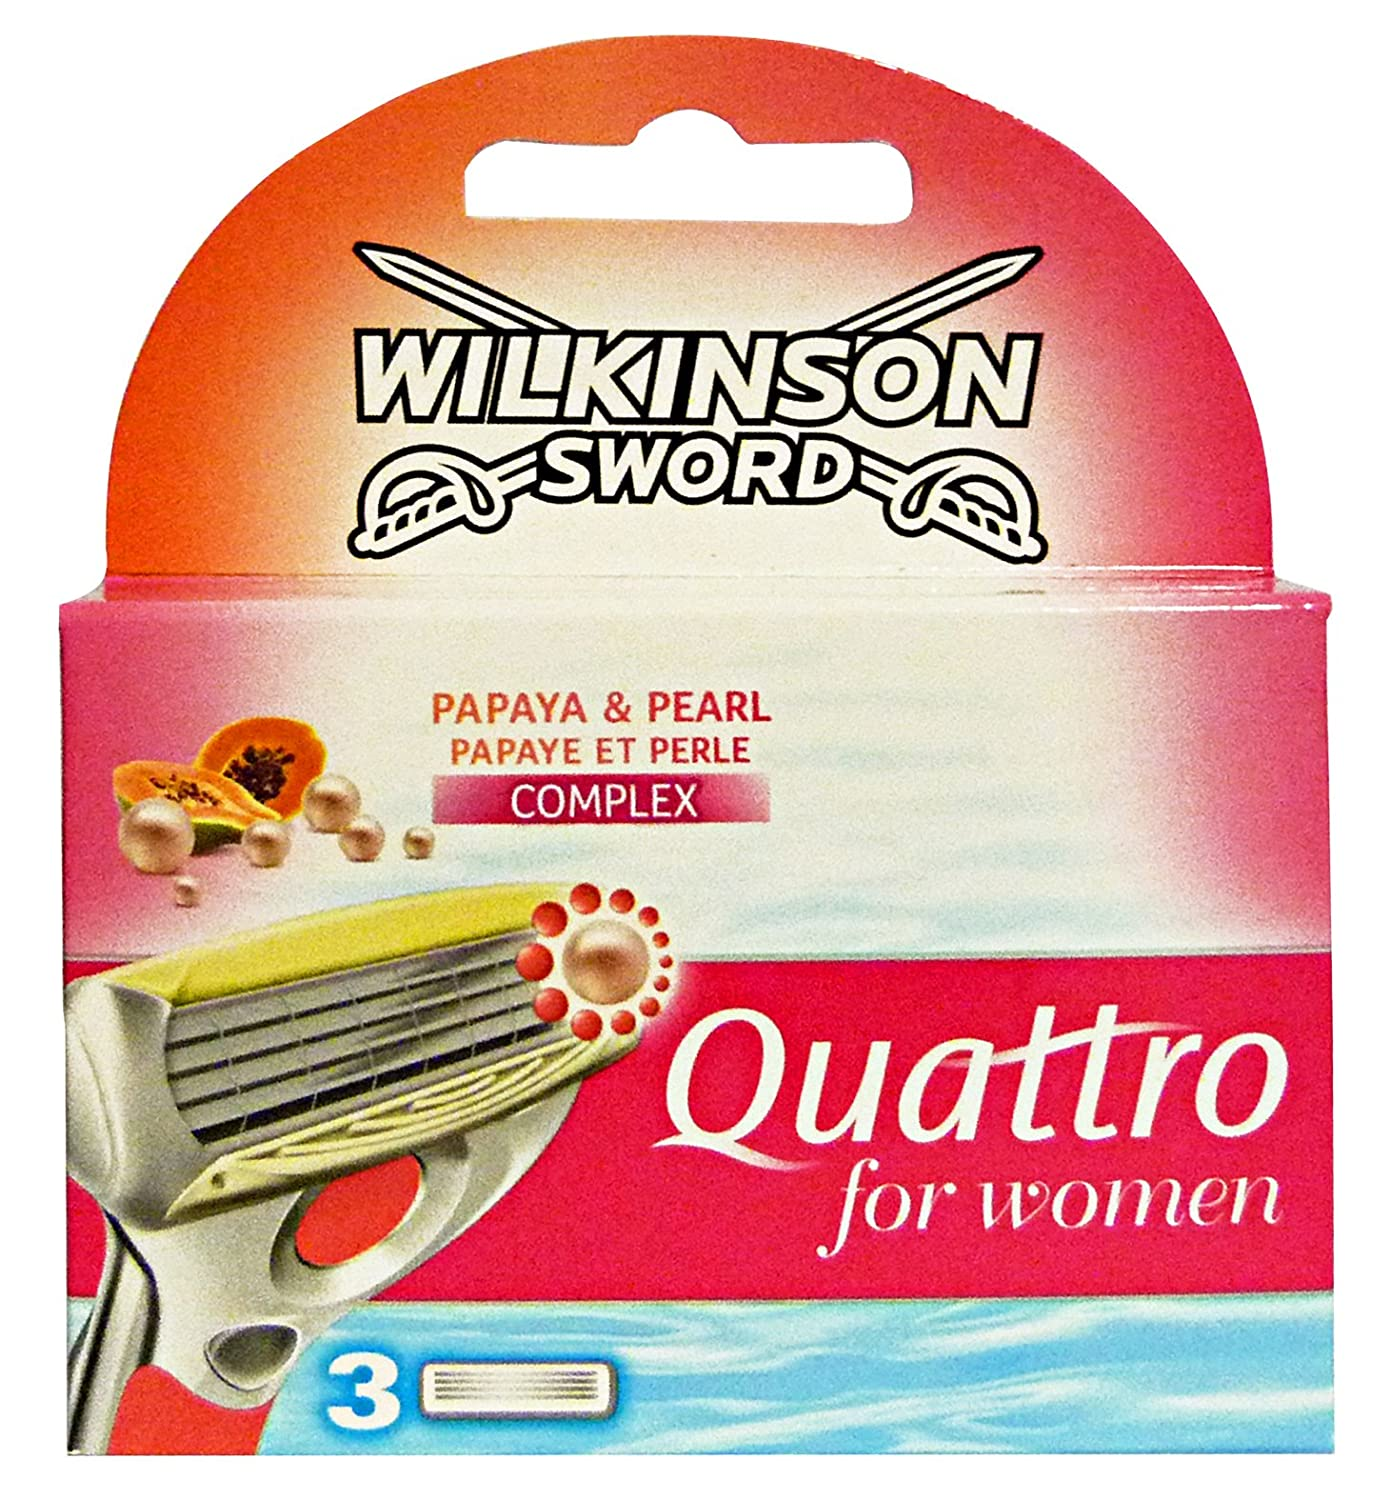 Wilkinson Sword Quattro for Women Razor Blades - Pack of 3 MyDeli 3865391